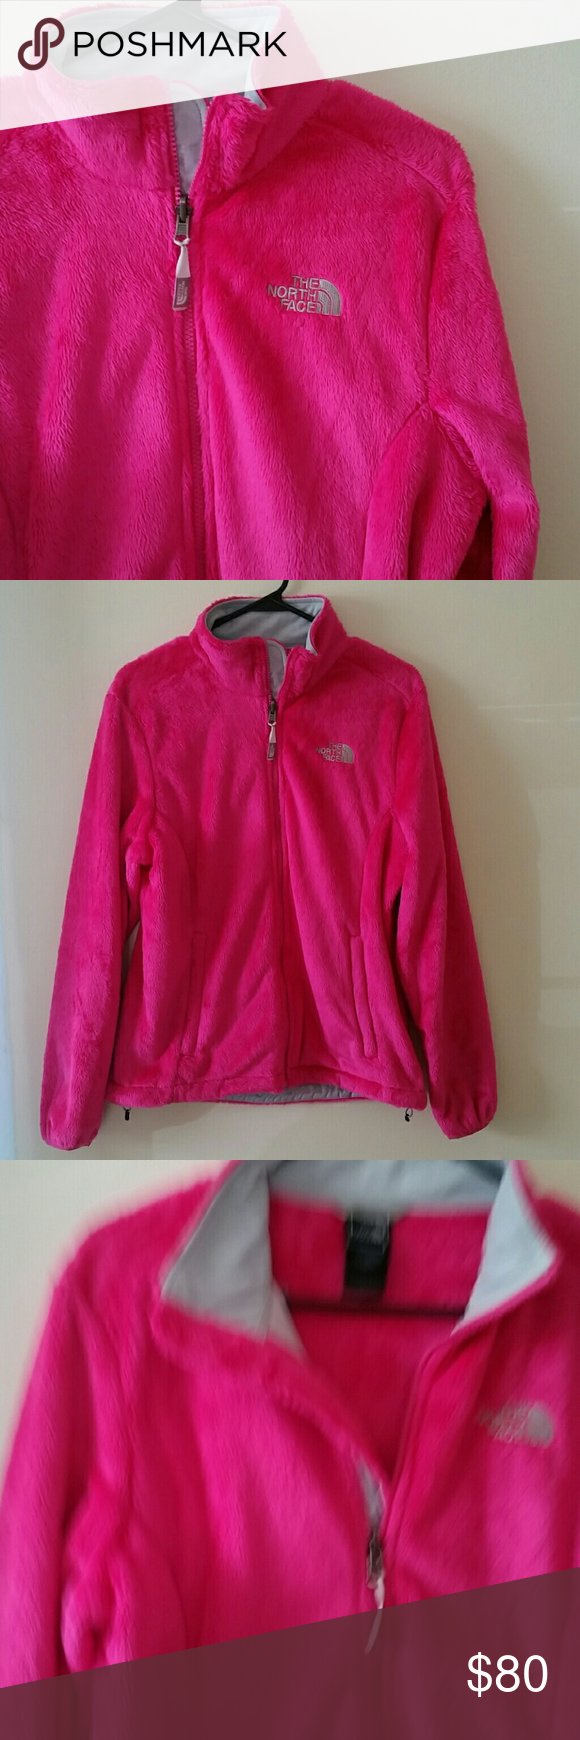 The North Face Fleece Jacket Hot Pink Fleece Inside Out North Face Jacket With Gray Lining Never Worn The North Face Fashion Clothes Design Fashion Design [ 1740 x 580 Pixel ]